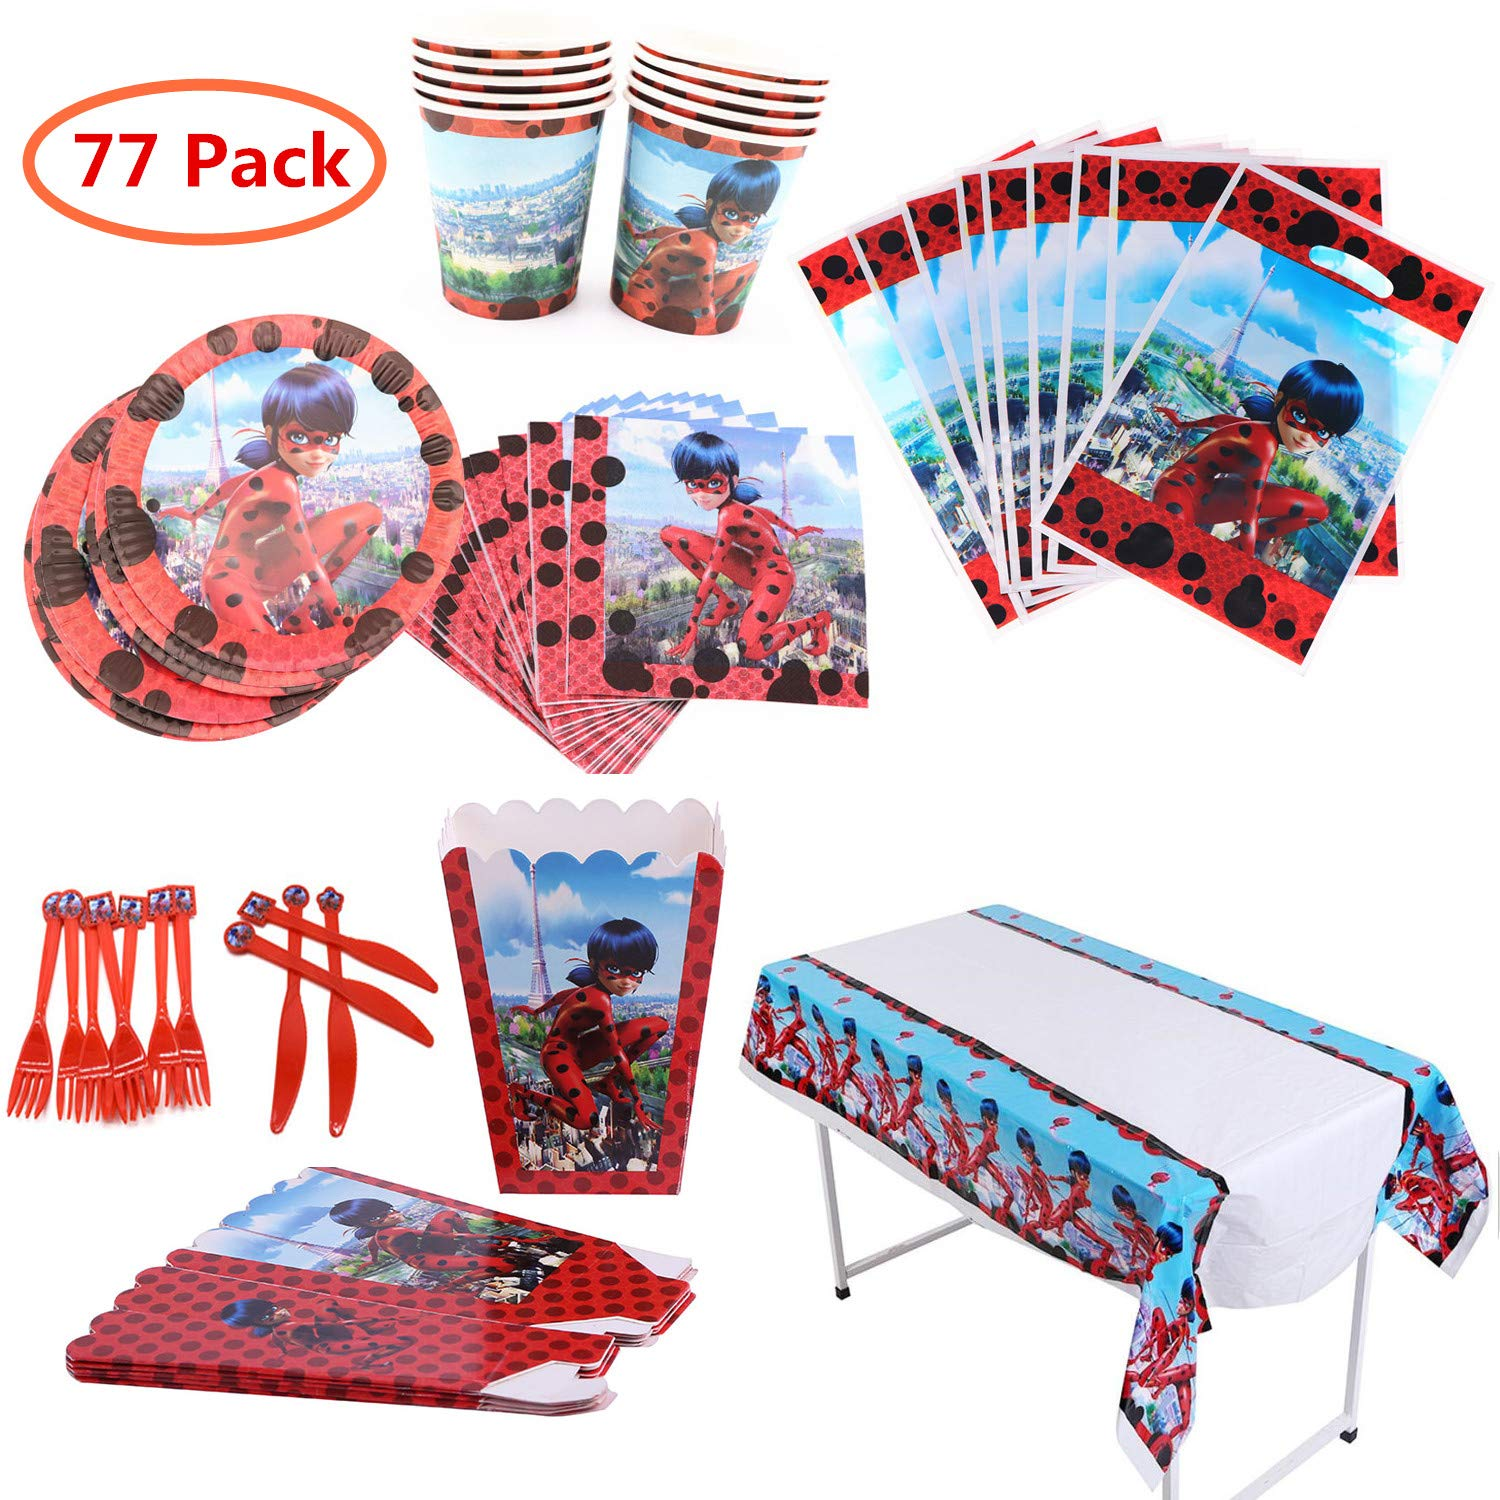 Ladybug PartySupplies Set 77Pcs Complete Birthday Party Decorations Supply Pack for 10 Children Kids by Geenber